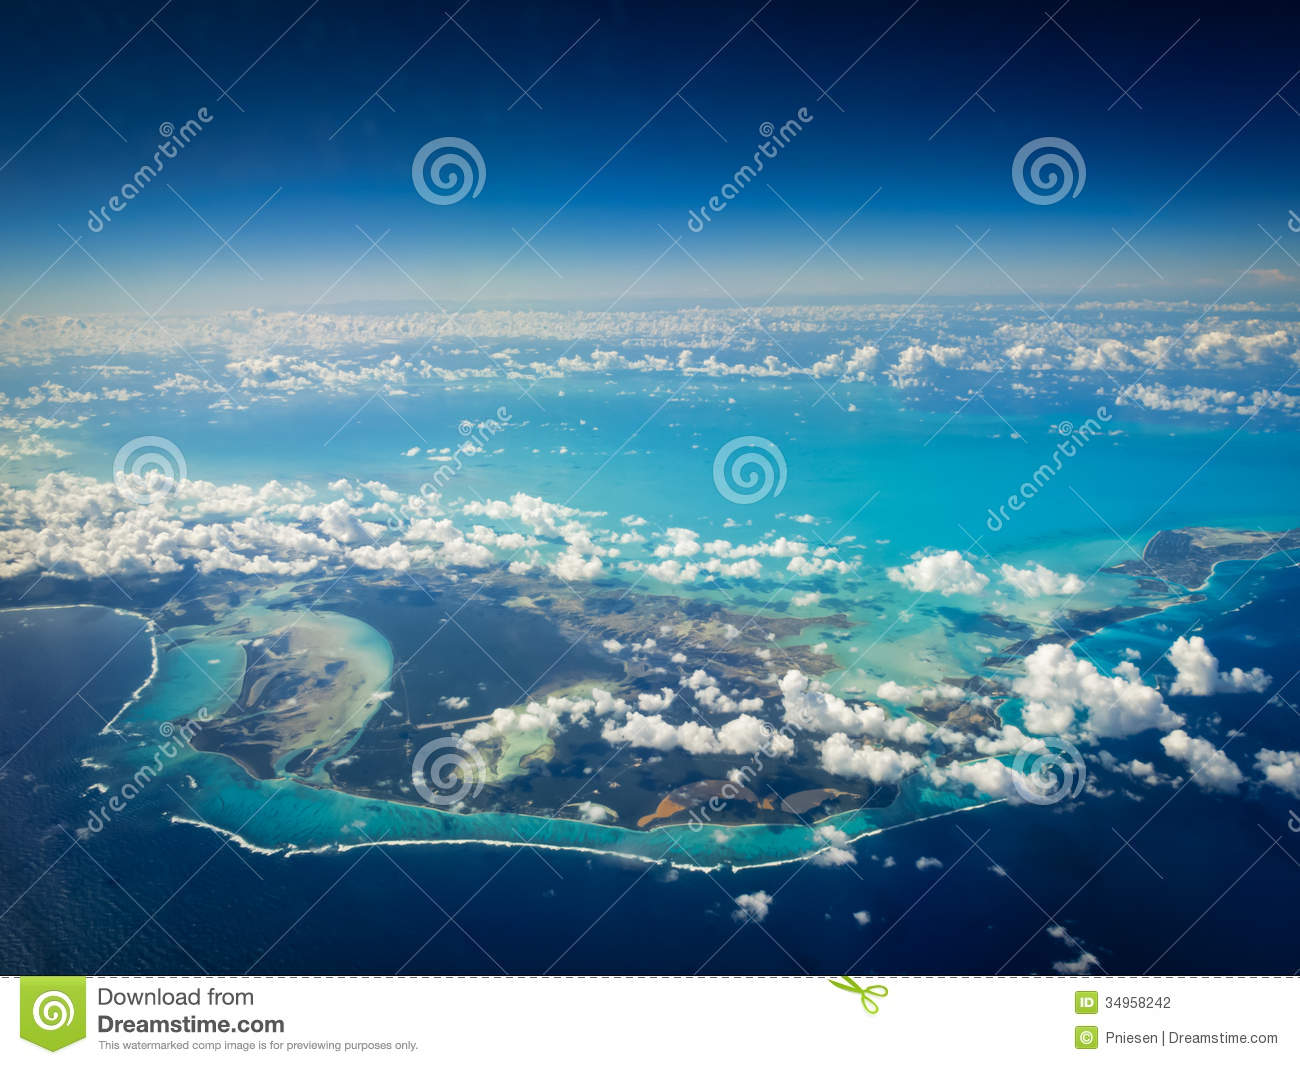 Aerial view of bright turquoise shallow water around Caribbean islands